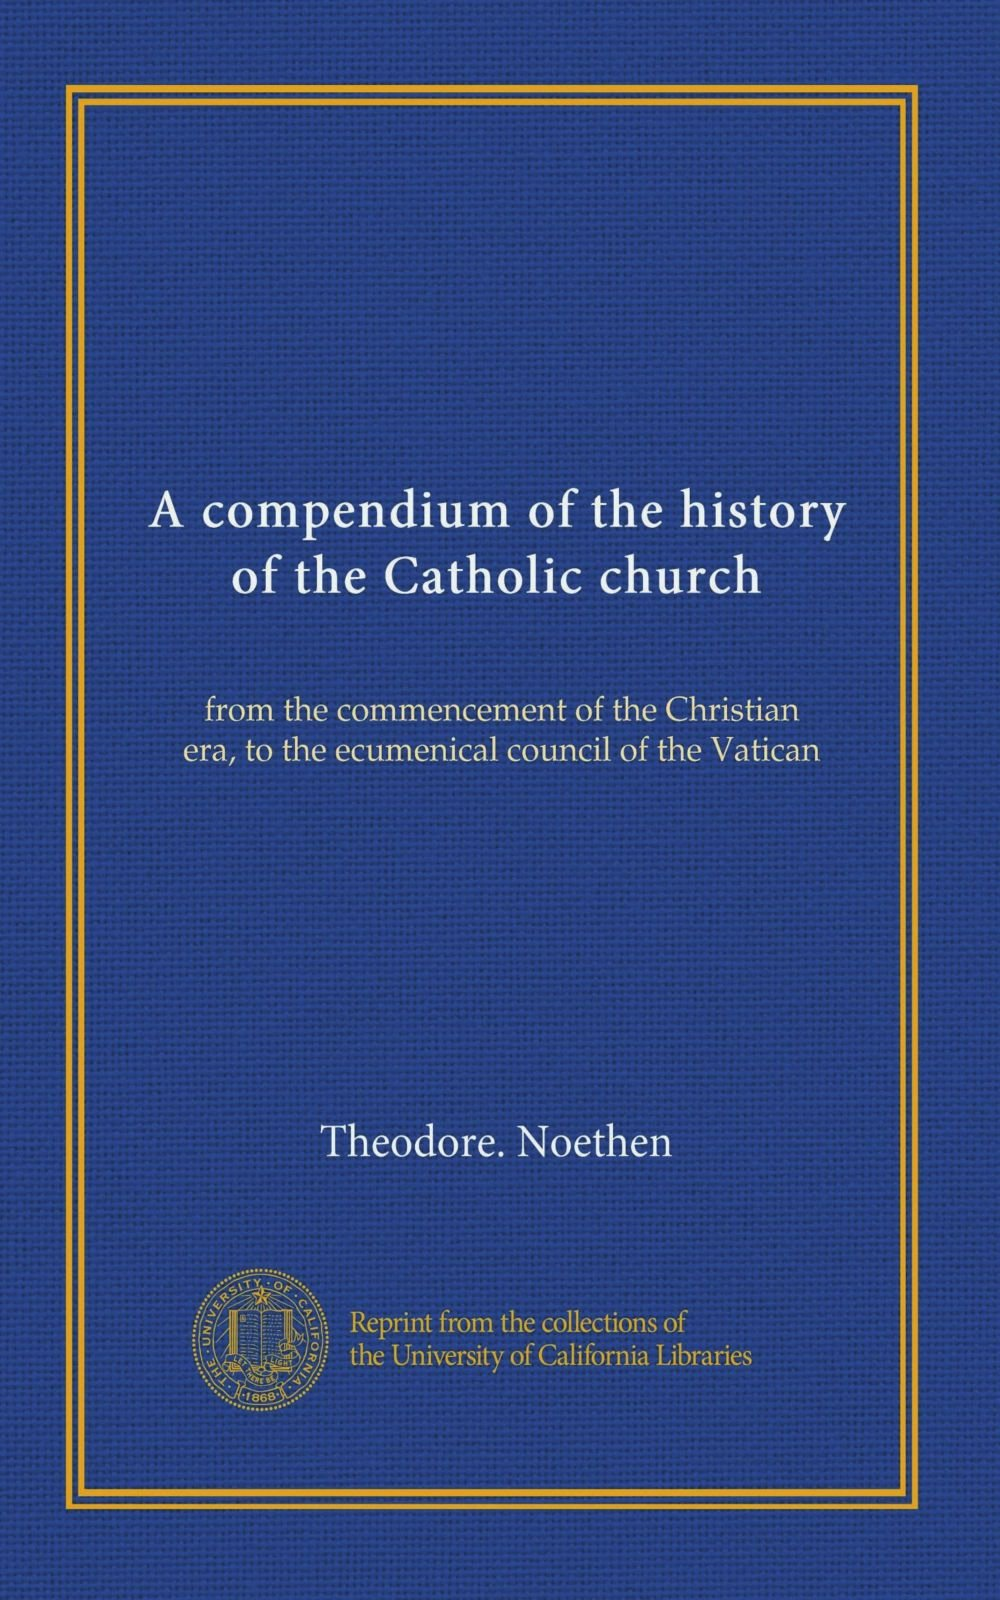 Download A compendium of the history of the Catholic church: from the commencement of the Christian era, to the ecumenical council of the Vatican PDF